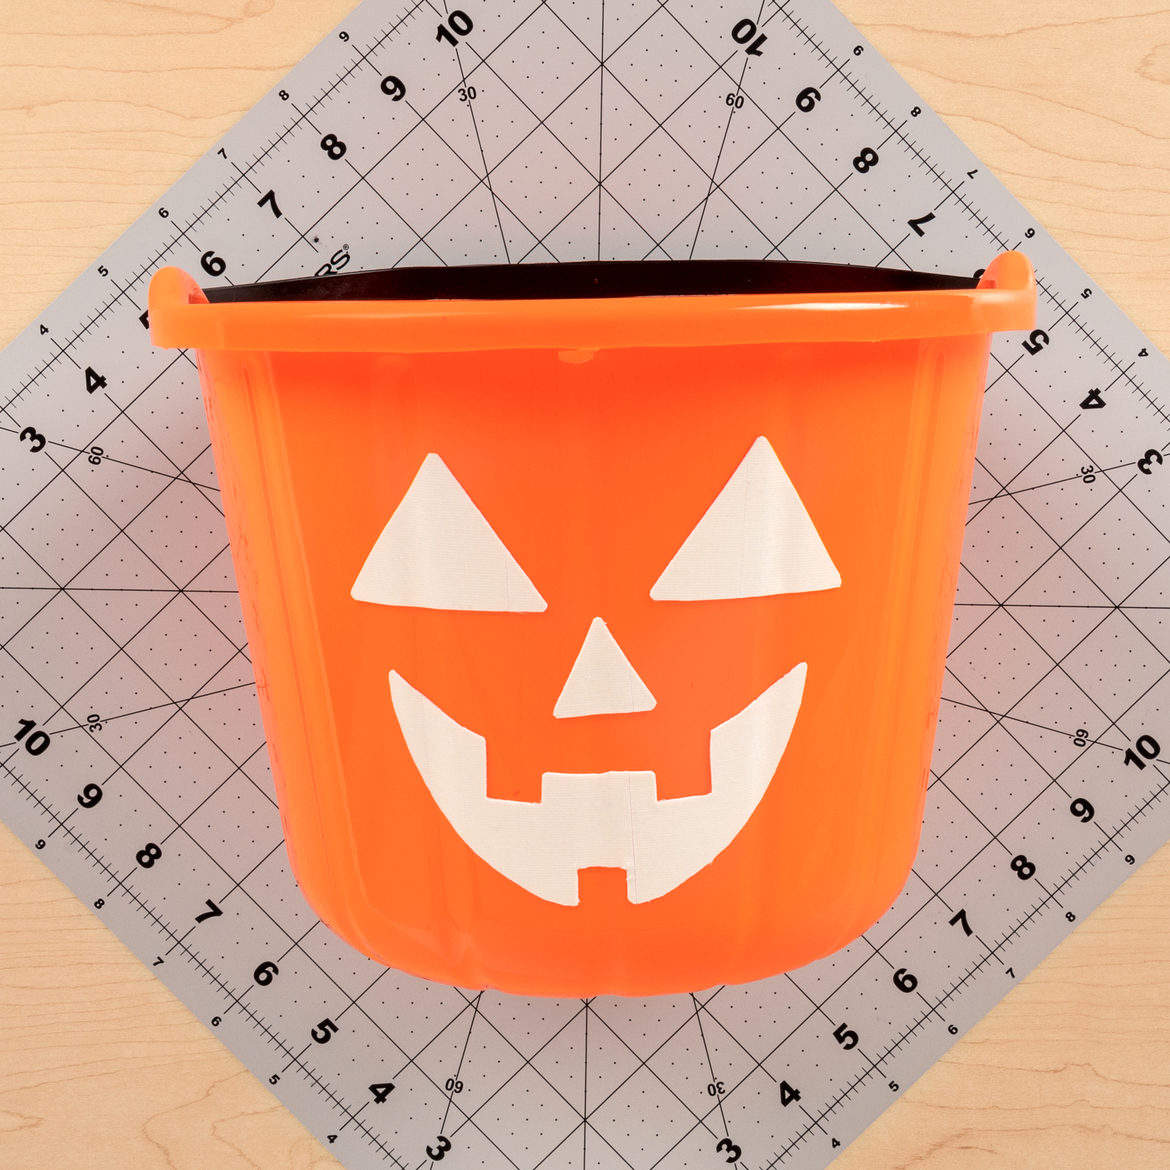 2018 Cdt Glow In The Dark Pumpkin Treat Buckets Step 4